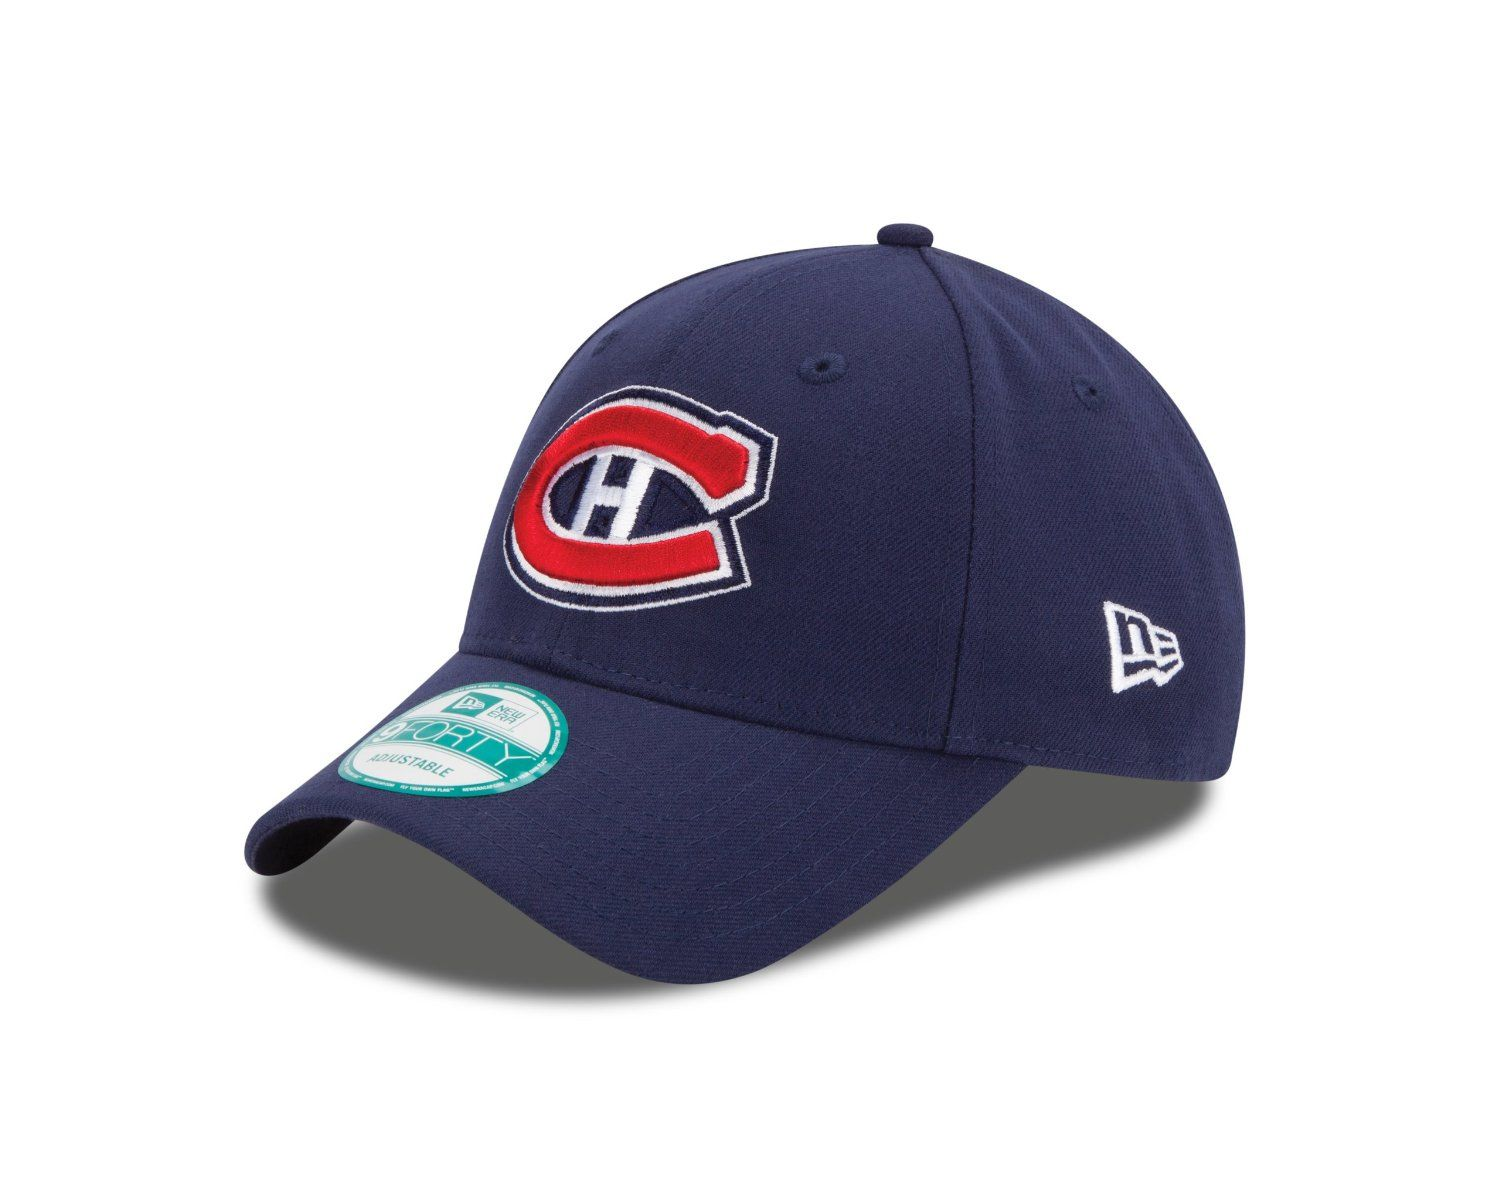 New Era NHL Gorra ajustable 940  Amazon.com.mx  Deportes y Aire Libre c9296aa29d7